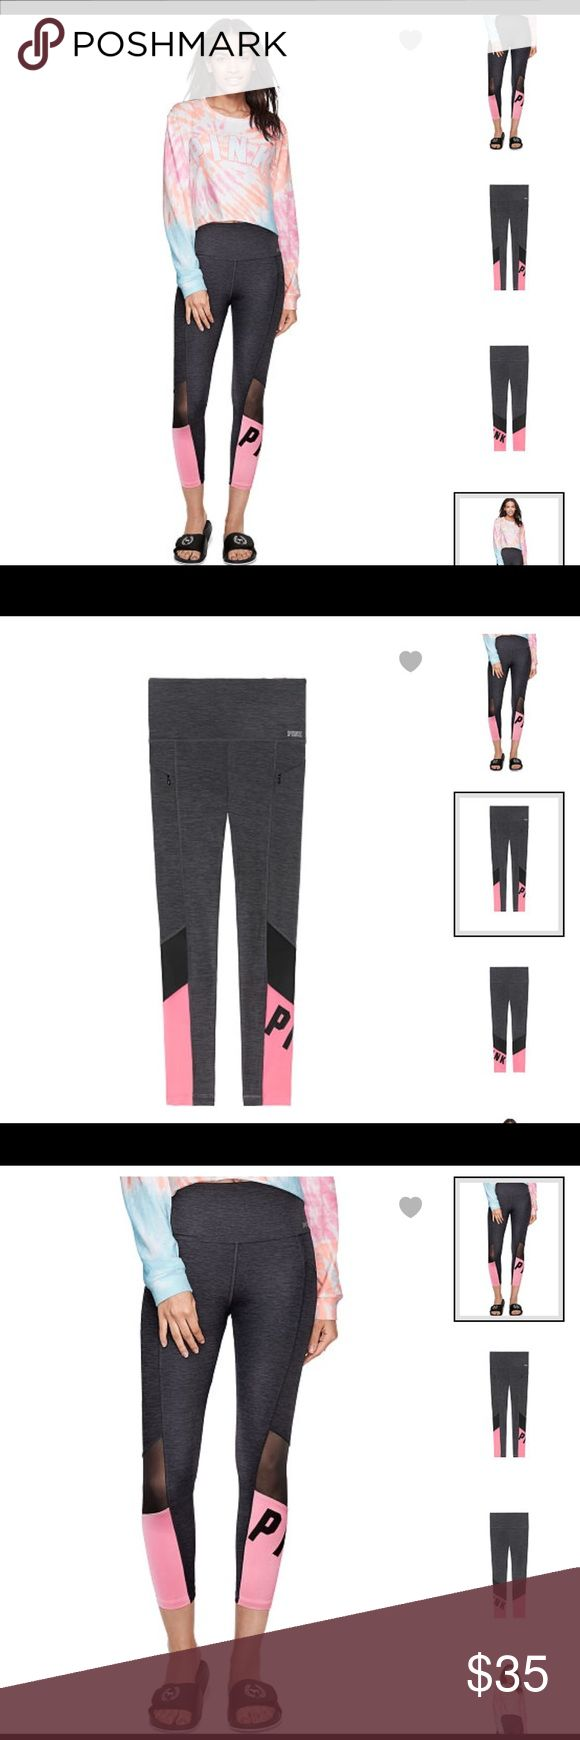 """PINK ULTIMATE HIGH-WAIST ANKLE LEGGING Product Details Super smooth and fit to flatter, this Ultimate Legging features a high waist, shine graphics and hits just at the ankle. Made to move, this style features quick-dry 4-way stretch fabric that wicks away sweat and is breathable during workouts.     High waist Premium quick-dry 4-way stretch fabric Breathable & sweat-wicking Ankle length 24"""" inseam Imported nylon/spandex PINK Pants Leggings"""